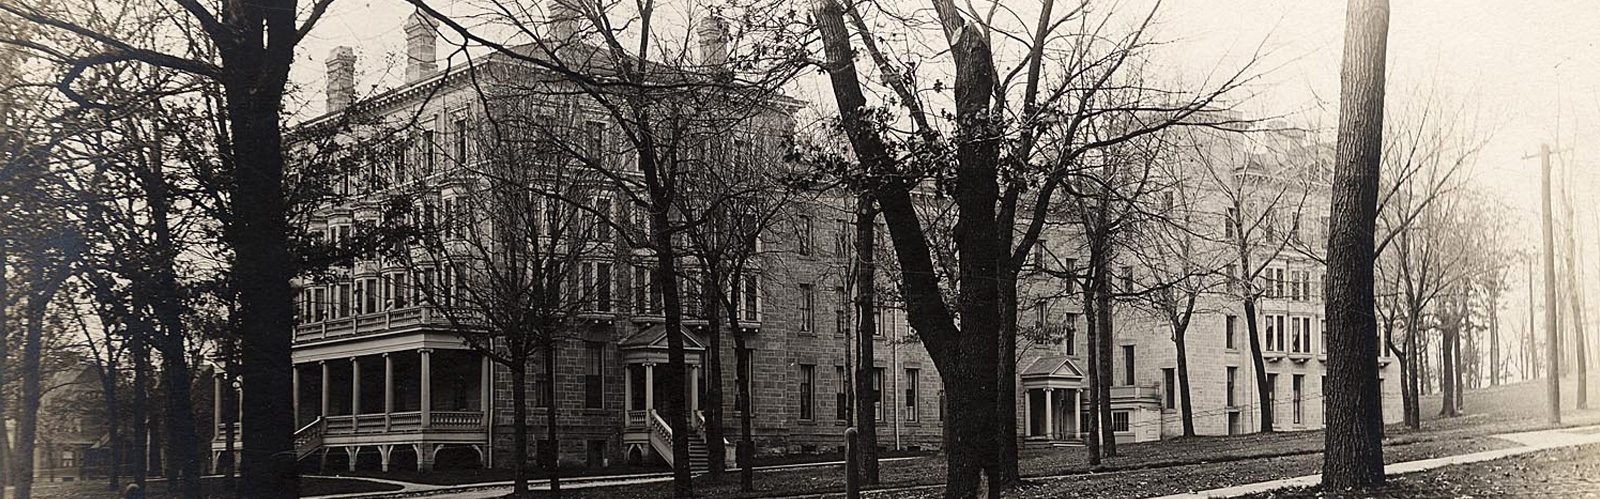 Historical photo of Ladies Hall from the late-1800s